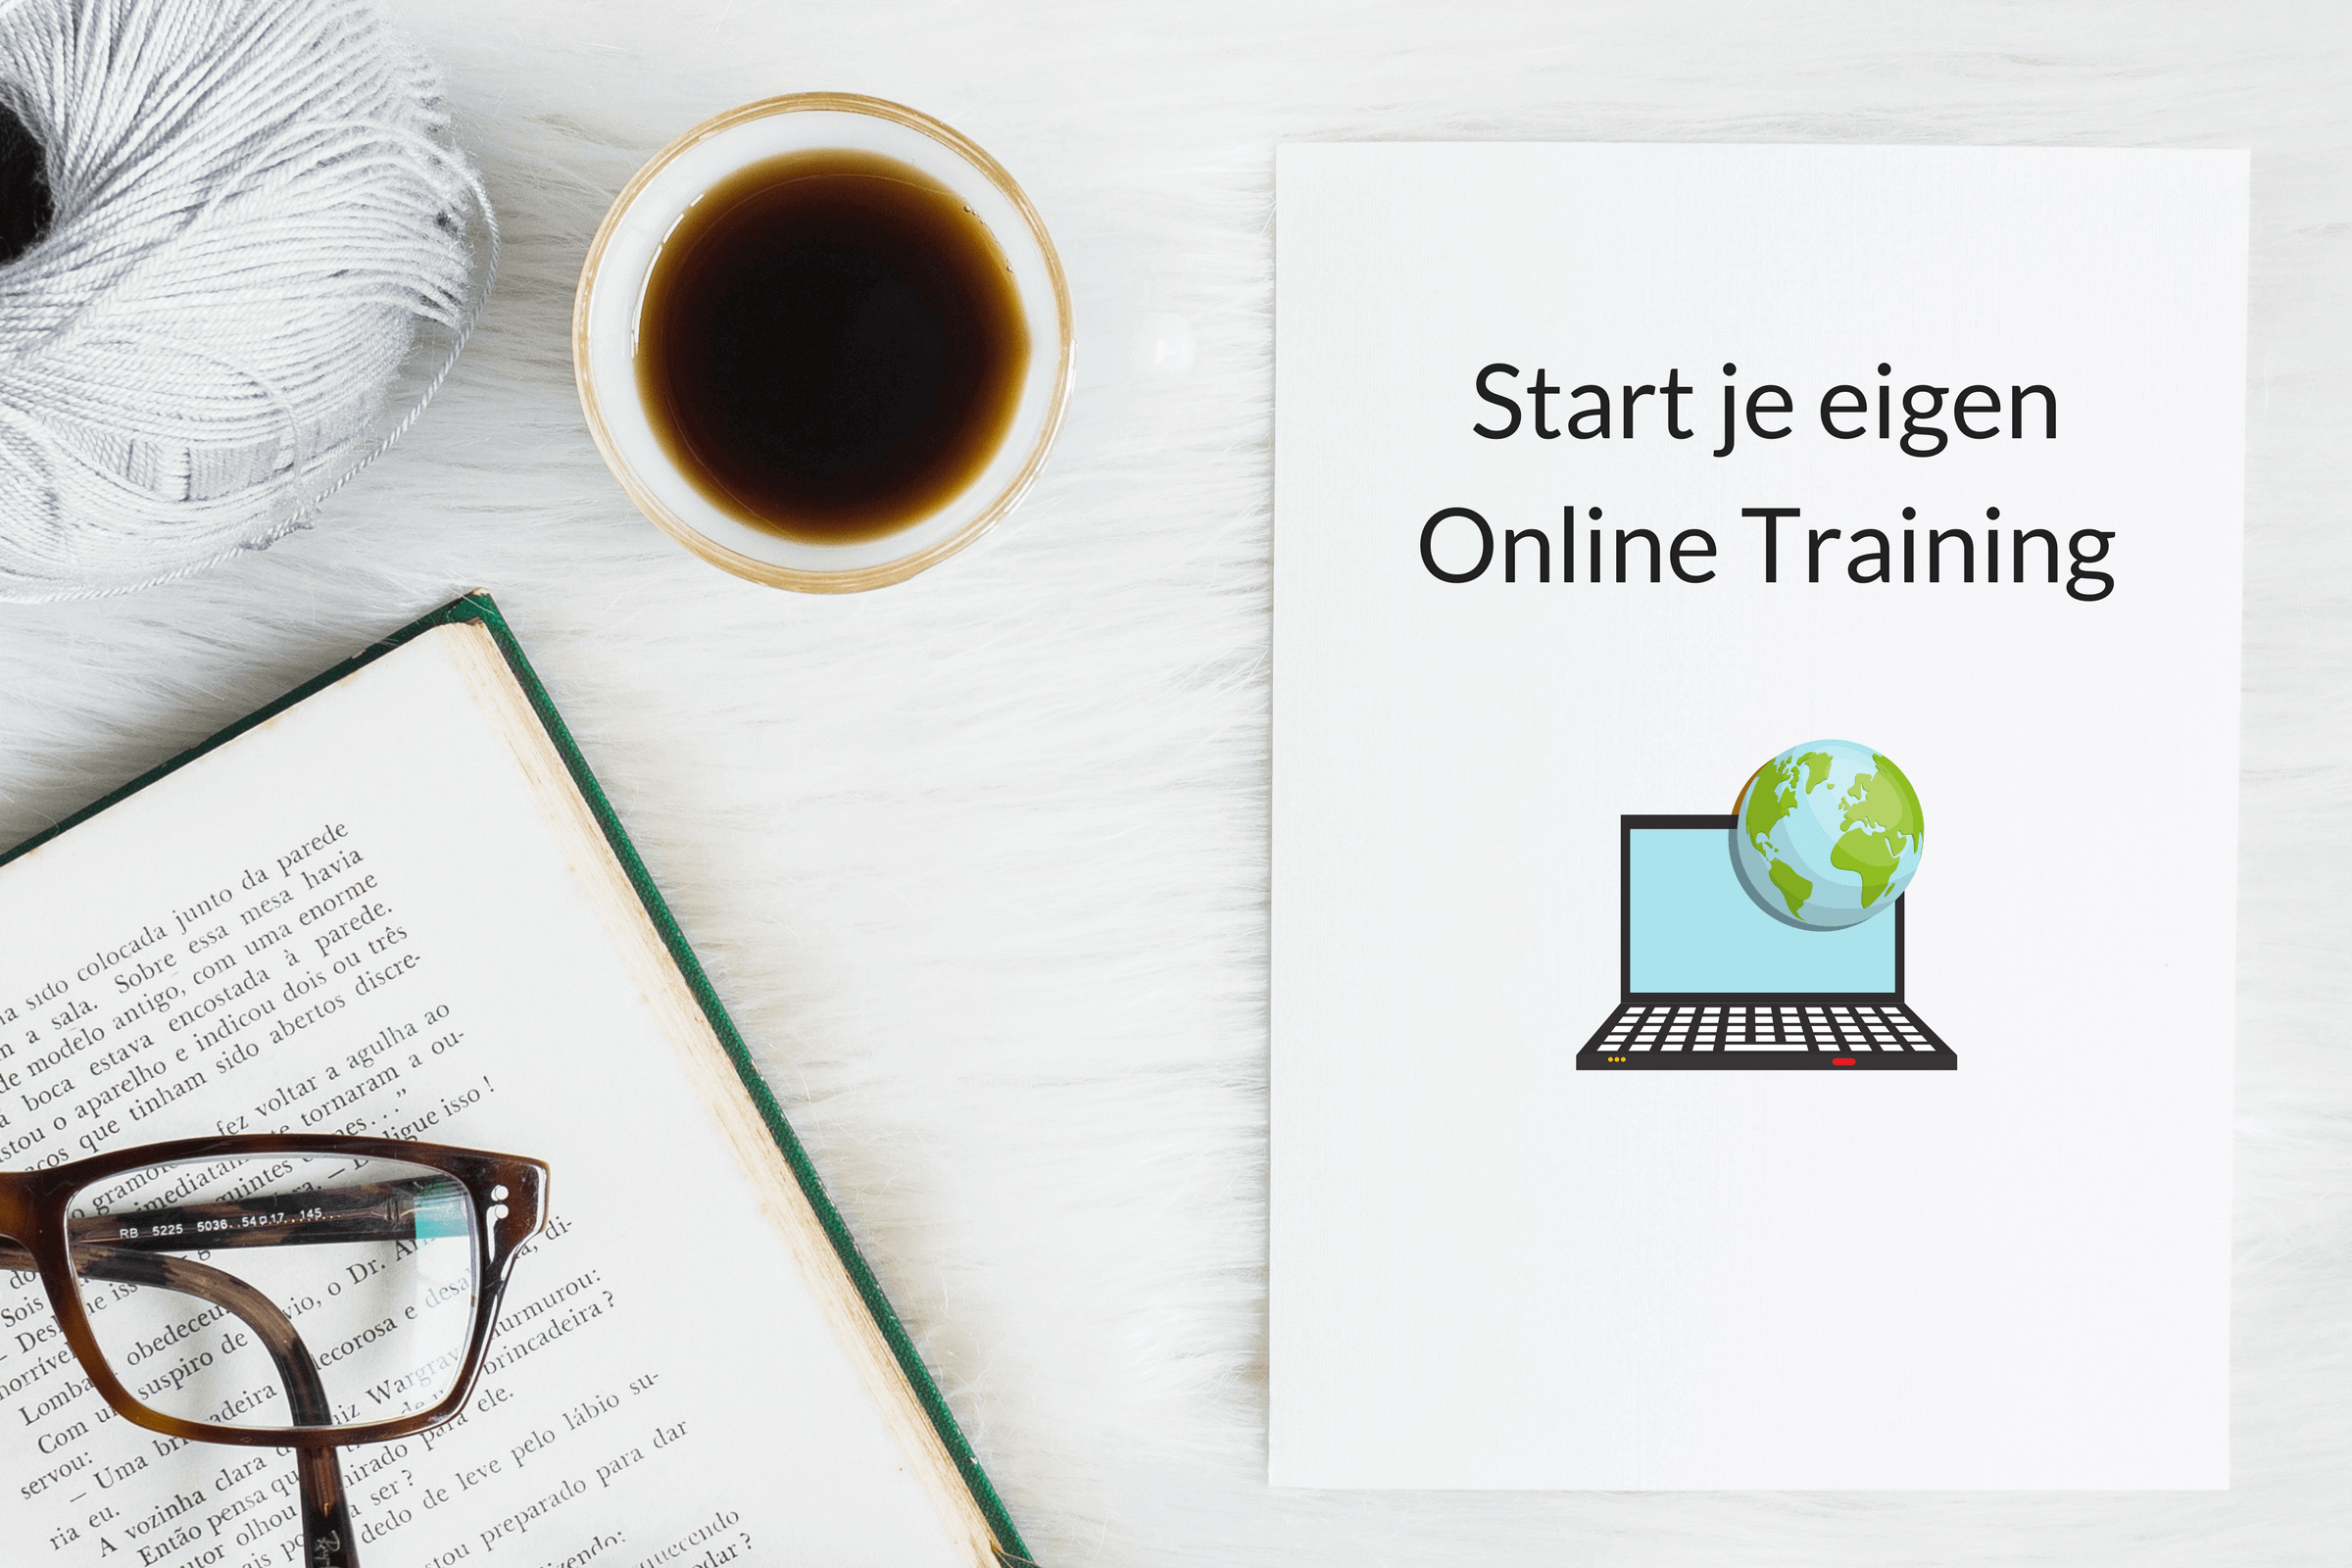 Start Online Training